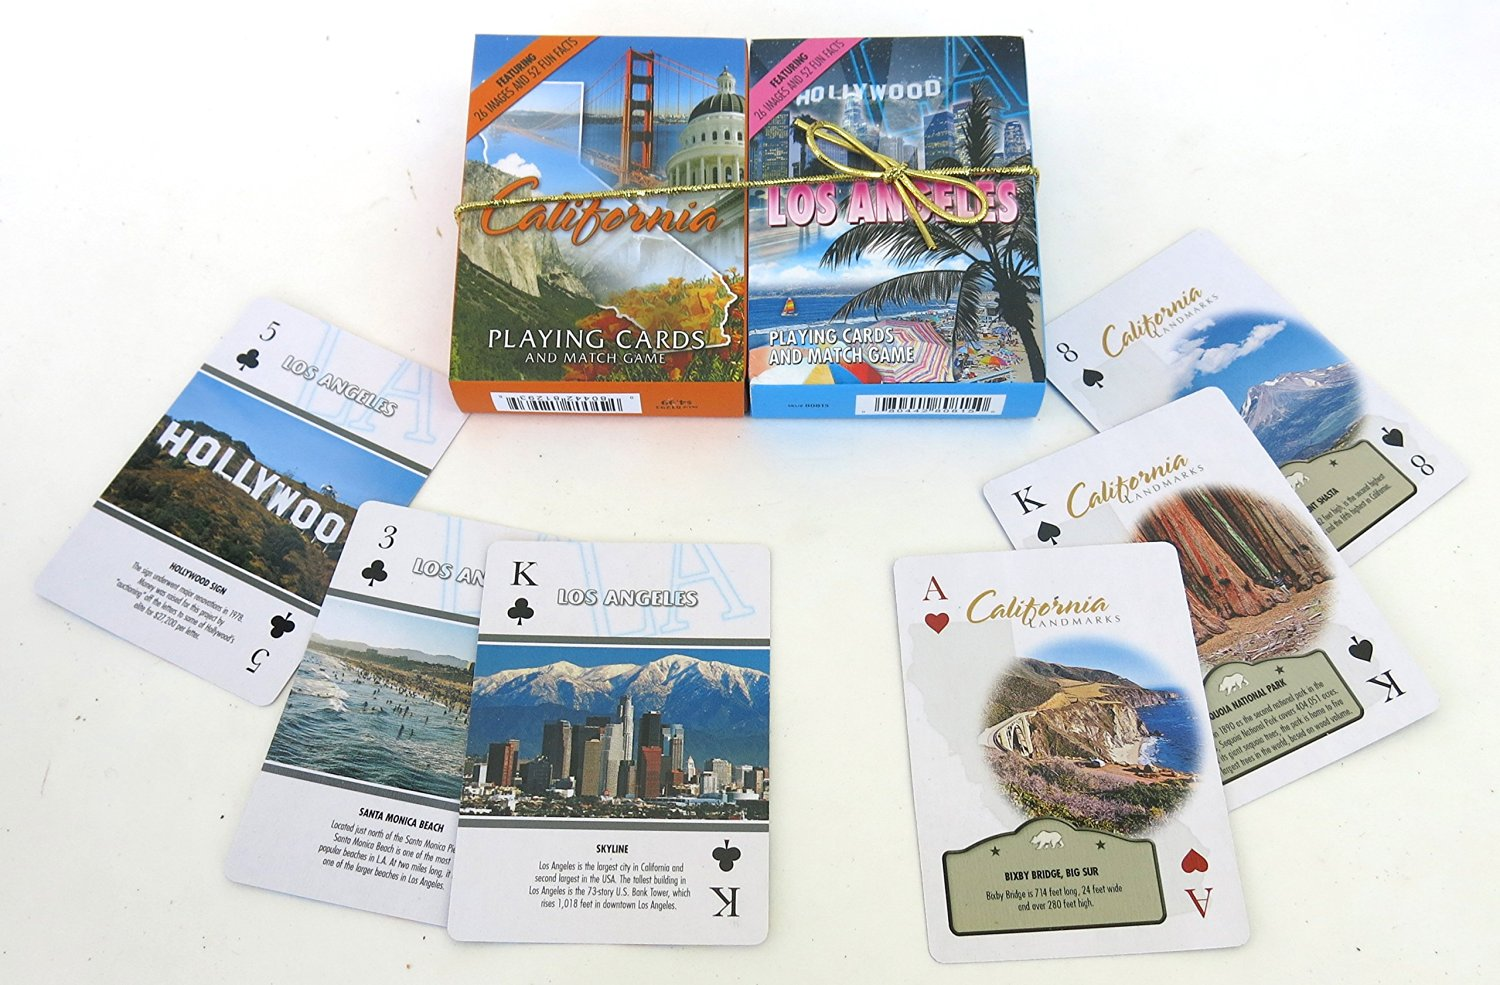 Los Angeles and California, Souvenir Playing Cards, Vacation Gift. Card Faces Feature Multiple Landmarks, Oustsanding Tourist Gift. The Two Deck Set Includes a Gold Gift Ribbon